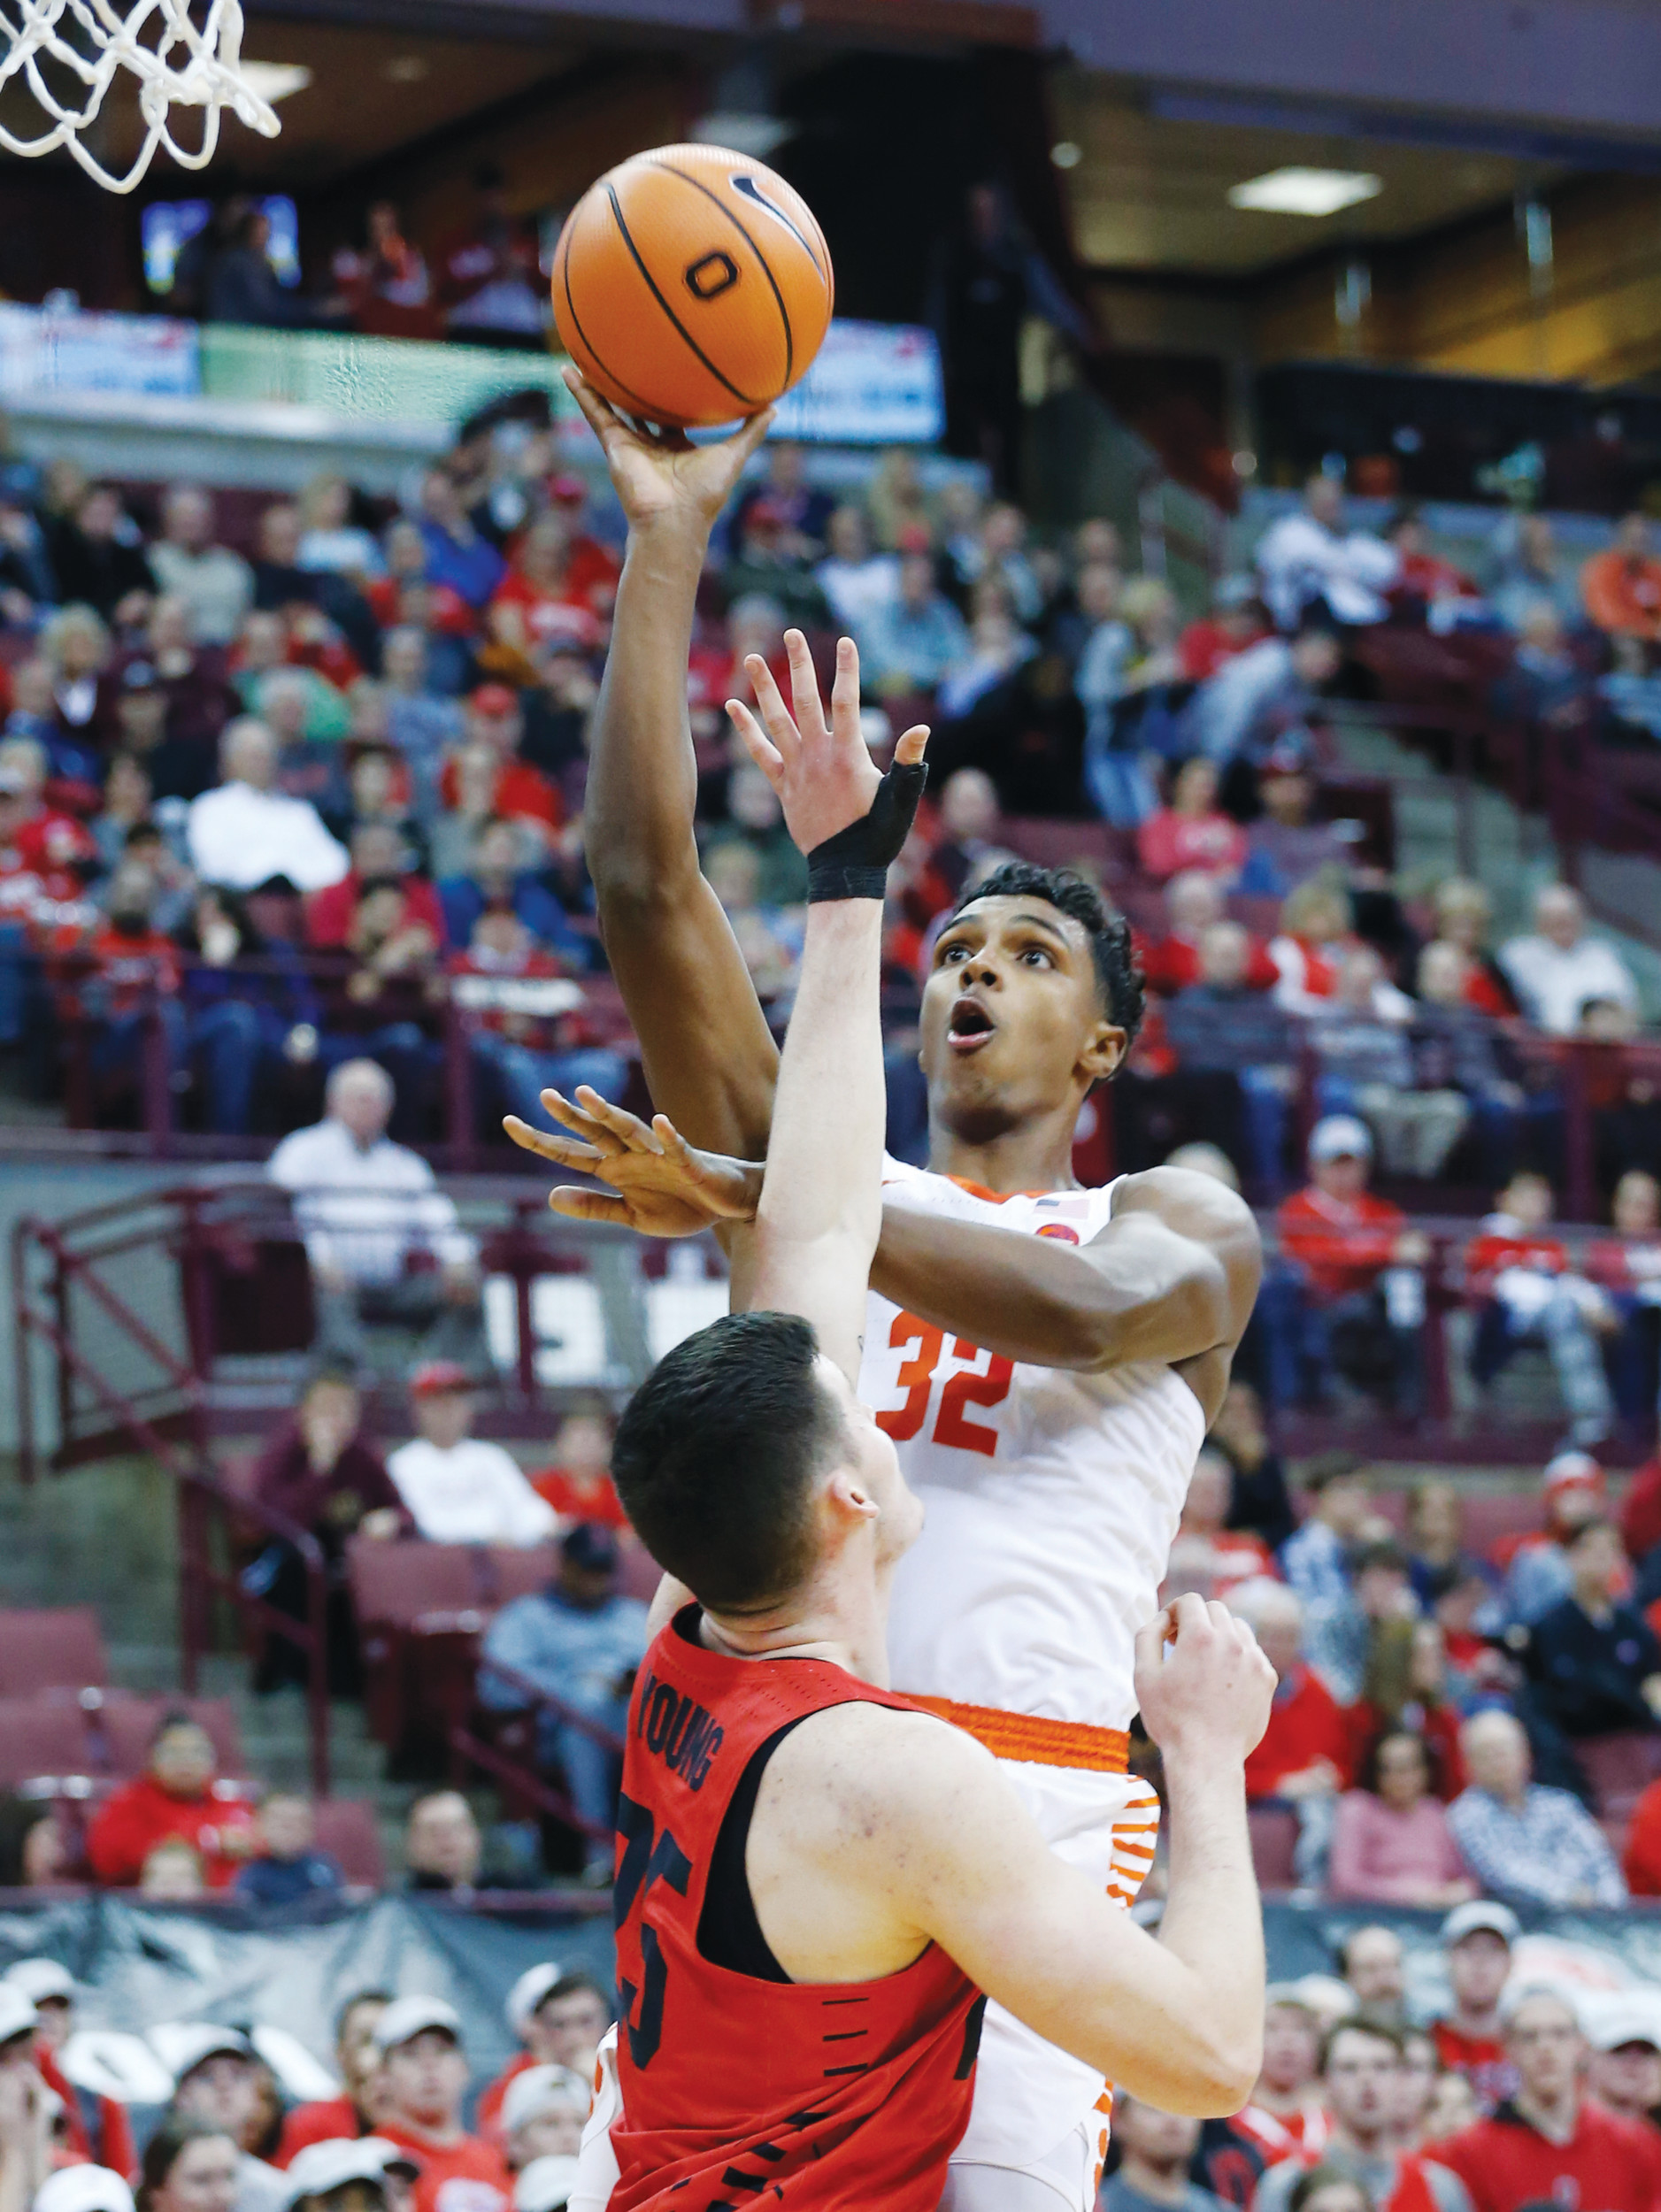 Clemson's Donte Grantham, top, shoots over Ohio State's Kyle Young during the first half of the Tigers' 79-65 victory over the Buckeyes on Wednesday in Columbus, Ohio.